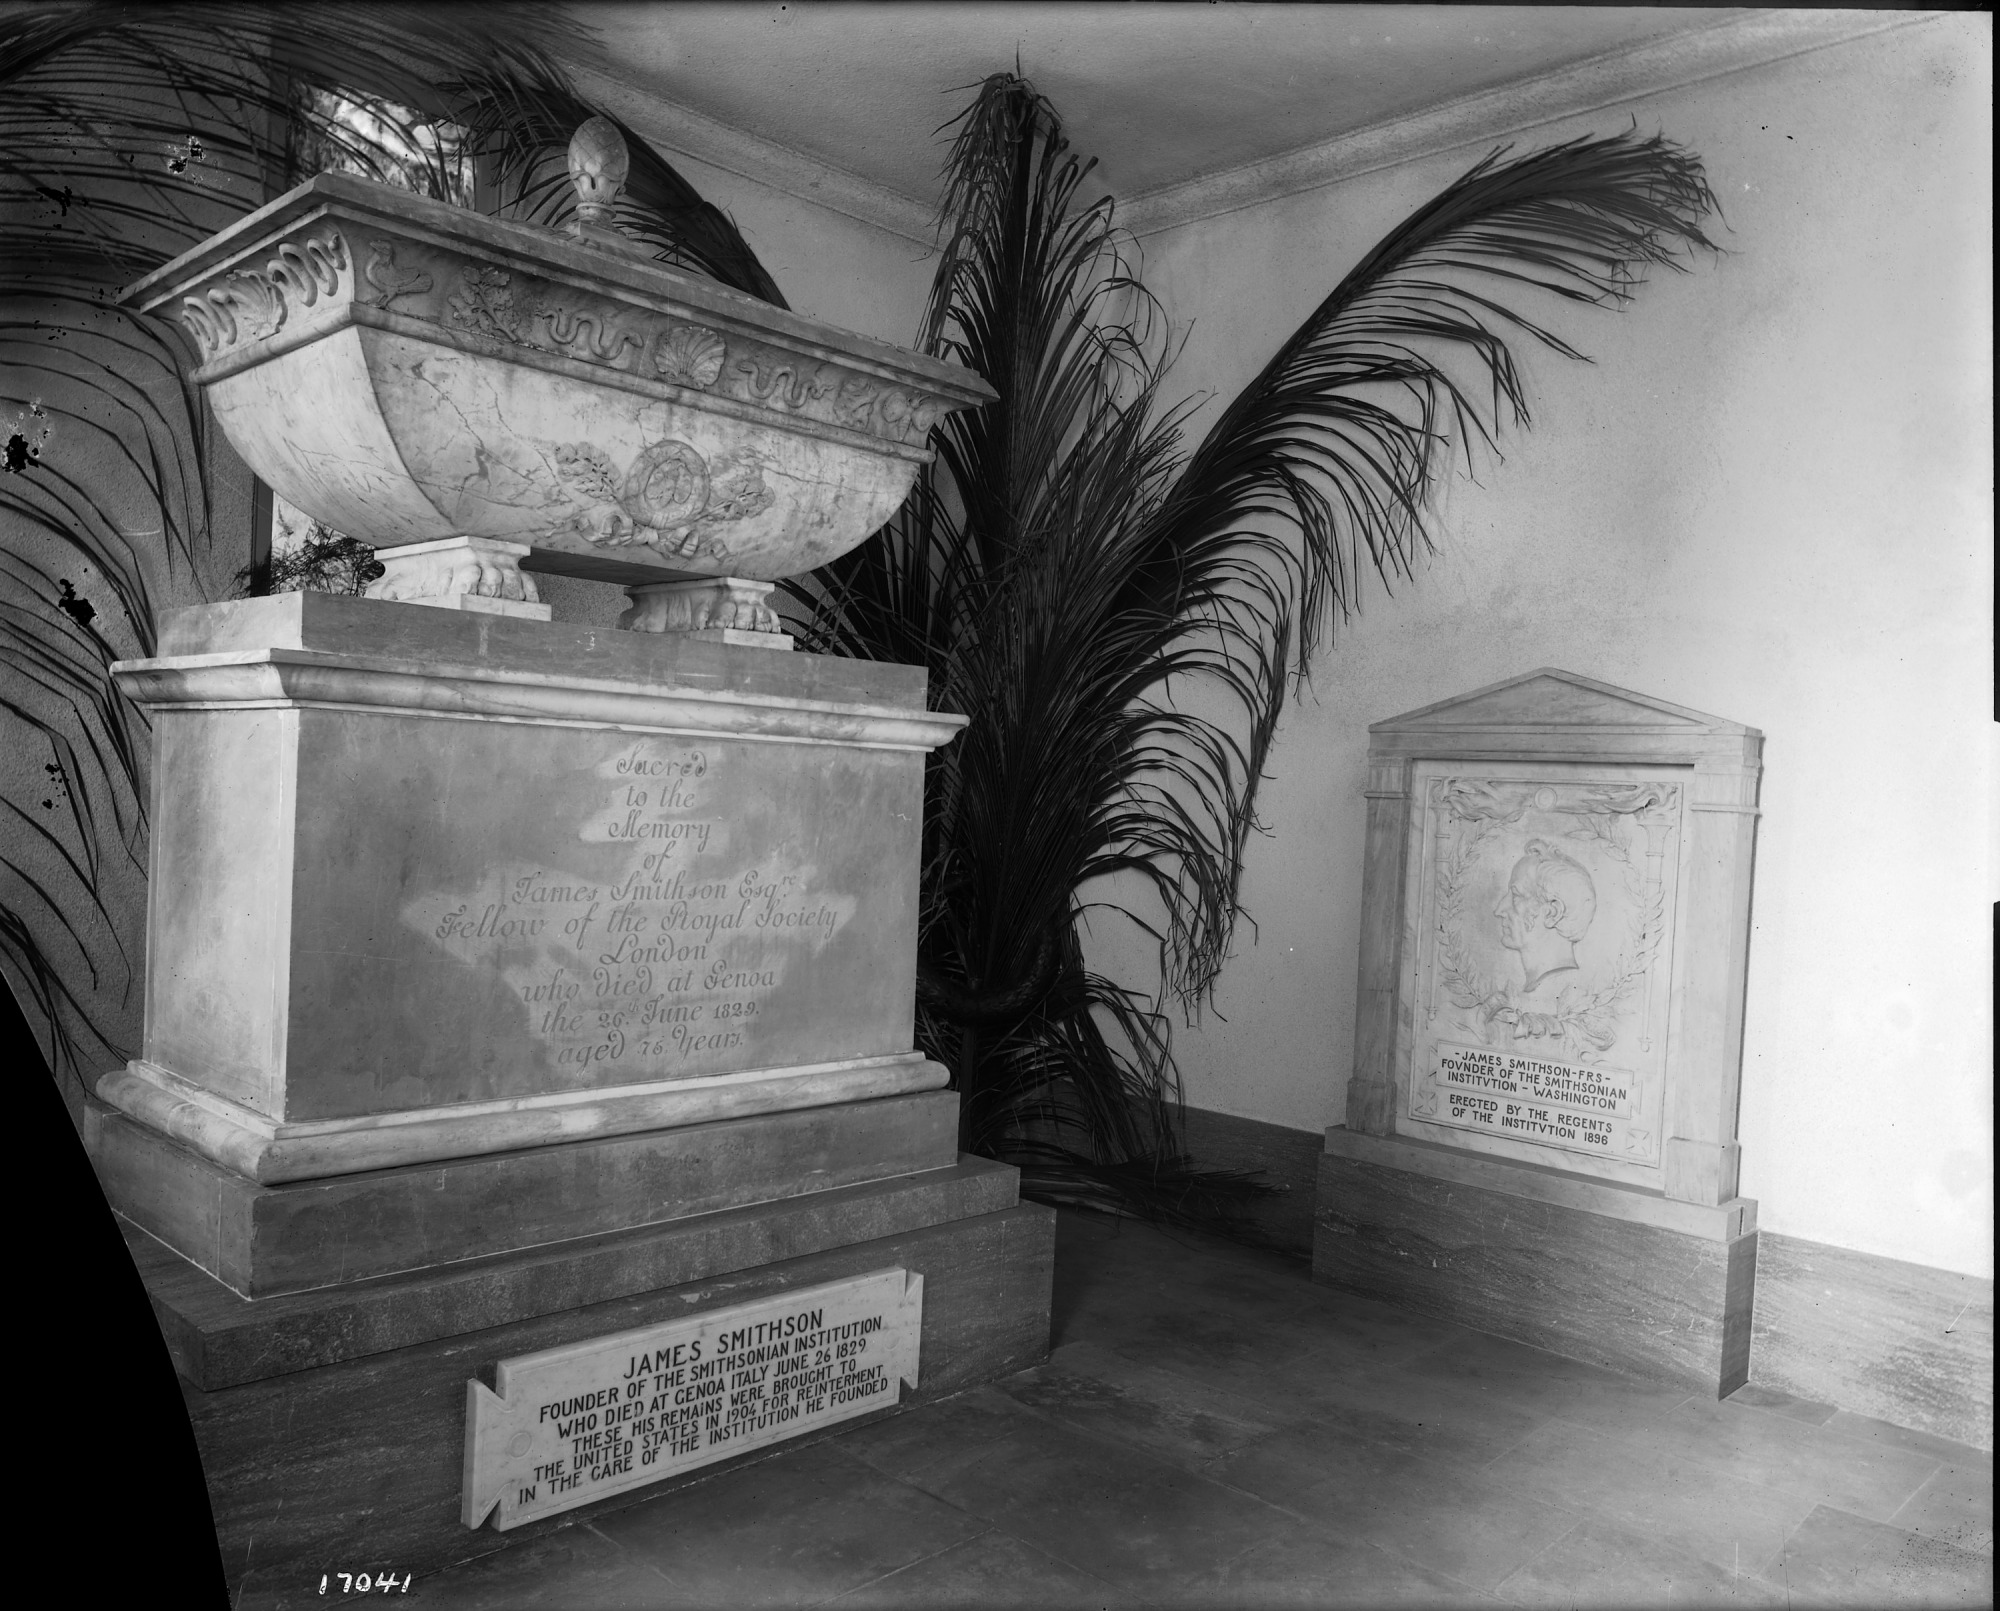 Crypt of James Smithson, by Unknown, 1905, Smithsonian Archives - History Div, MAH-17041.